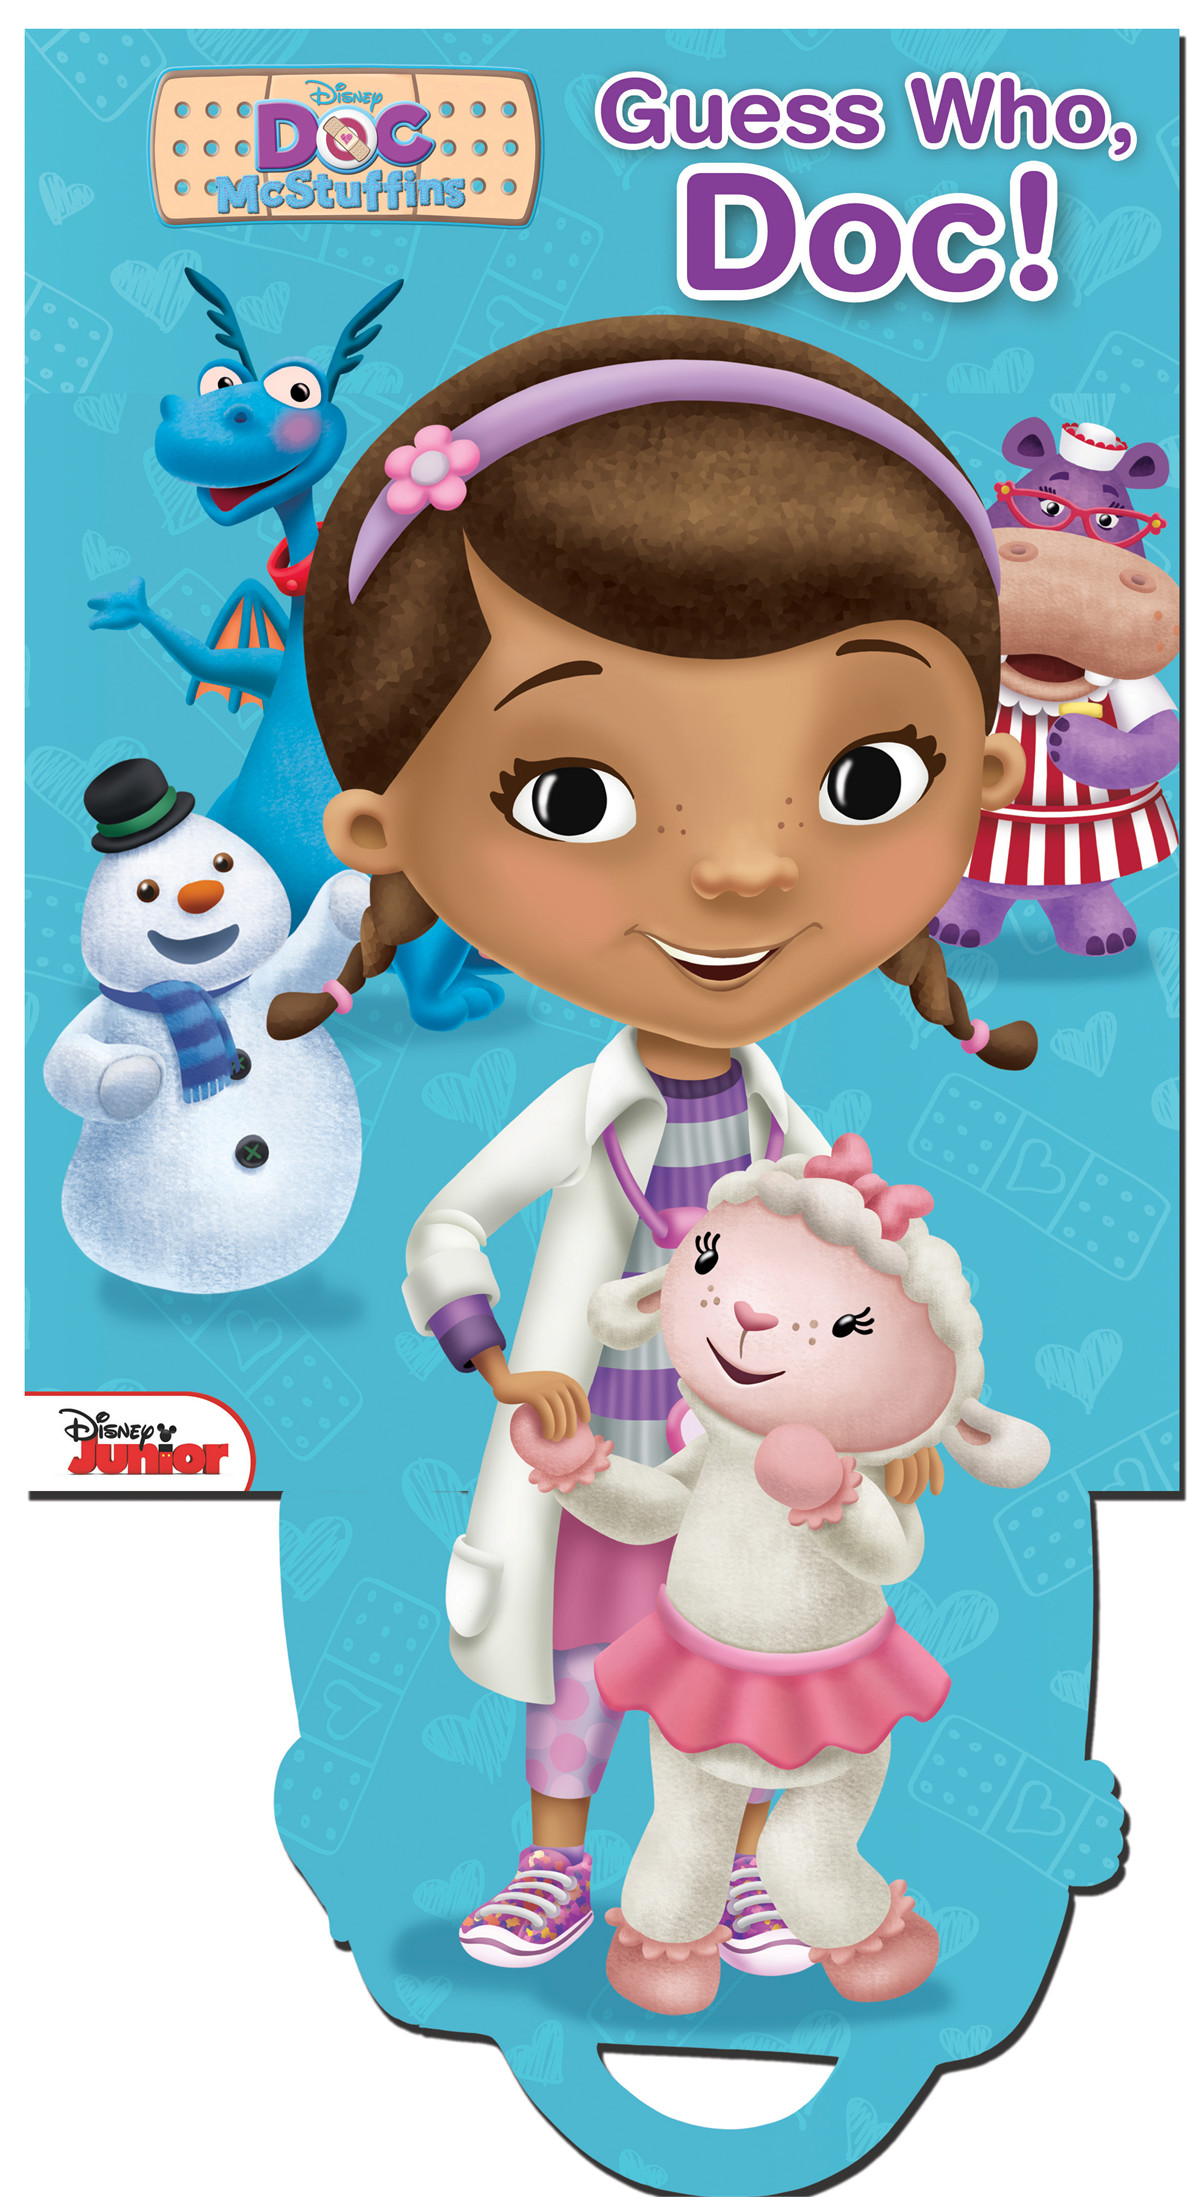 Disney doc mcstuffins guess who doc! 9780794430054.in01